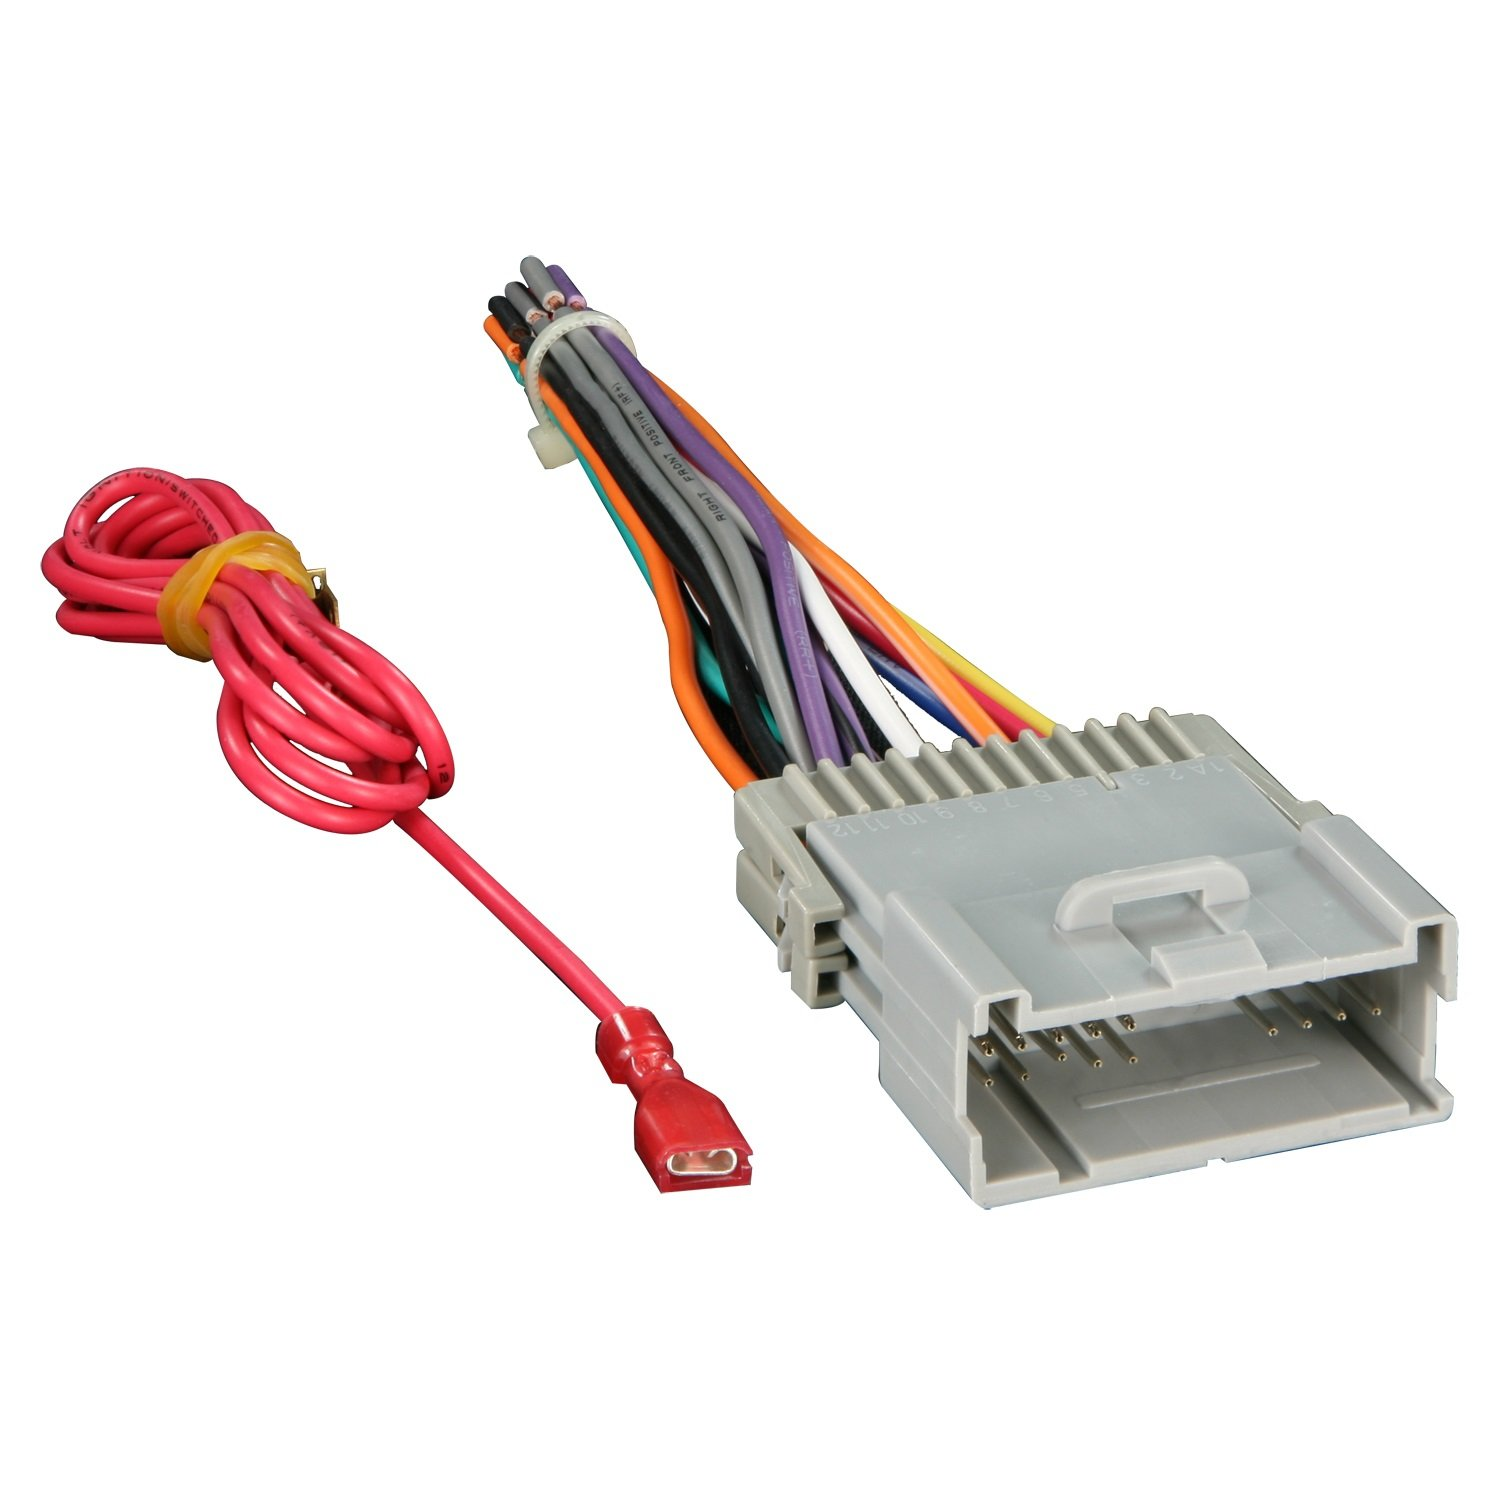 61eewxp9orL._SL1500_ amazon com metra 70 2003 radio wiring harness for gm 98 08 GM Wiring Color Codes at bakdesigns.co